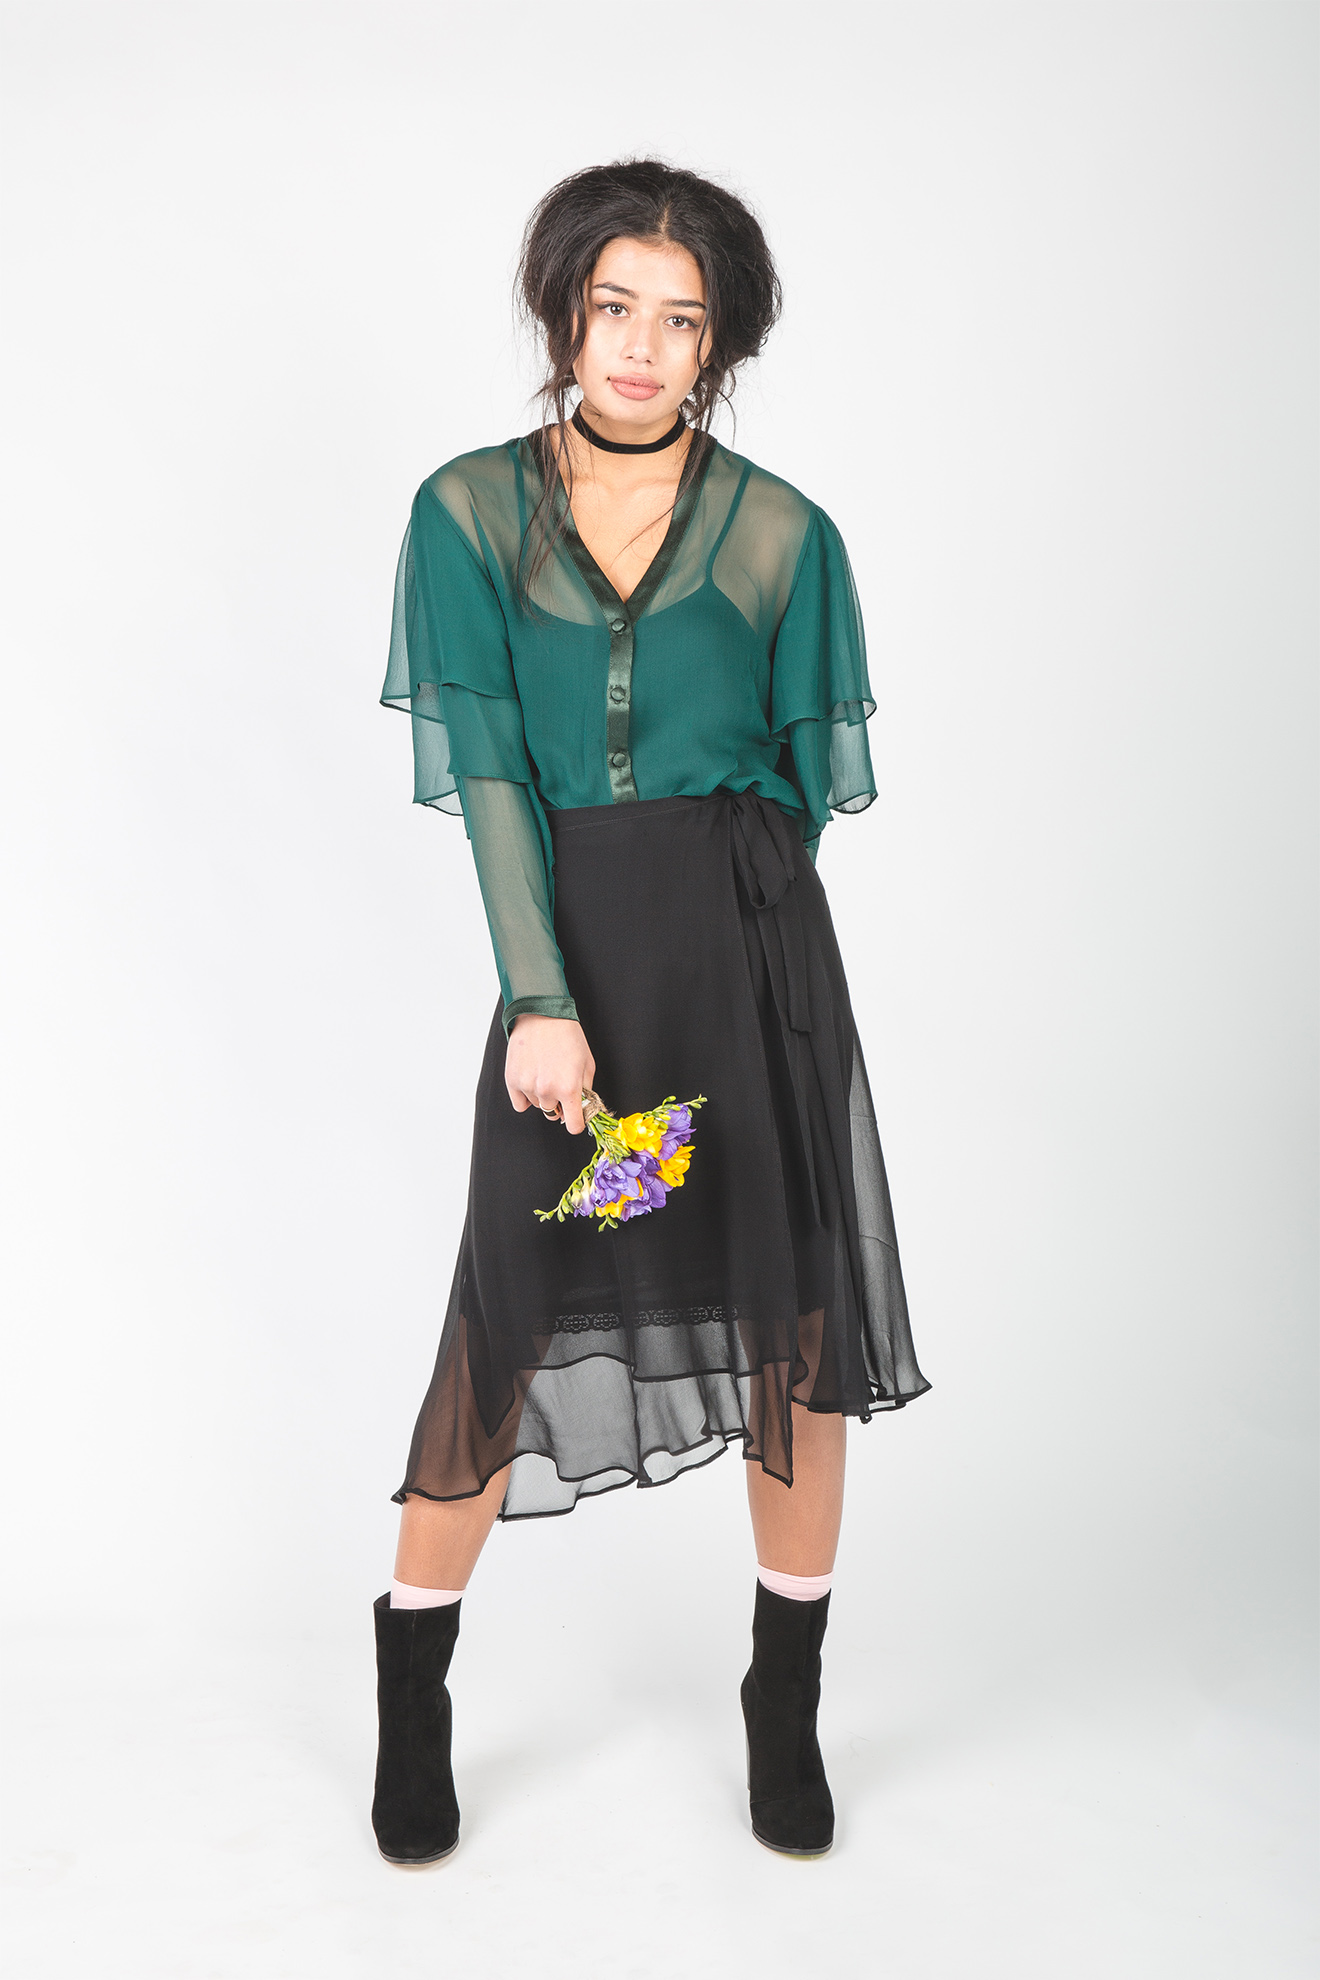 BLOOMIN' SHIRT SHEER 1.jpg